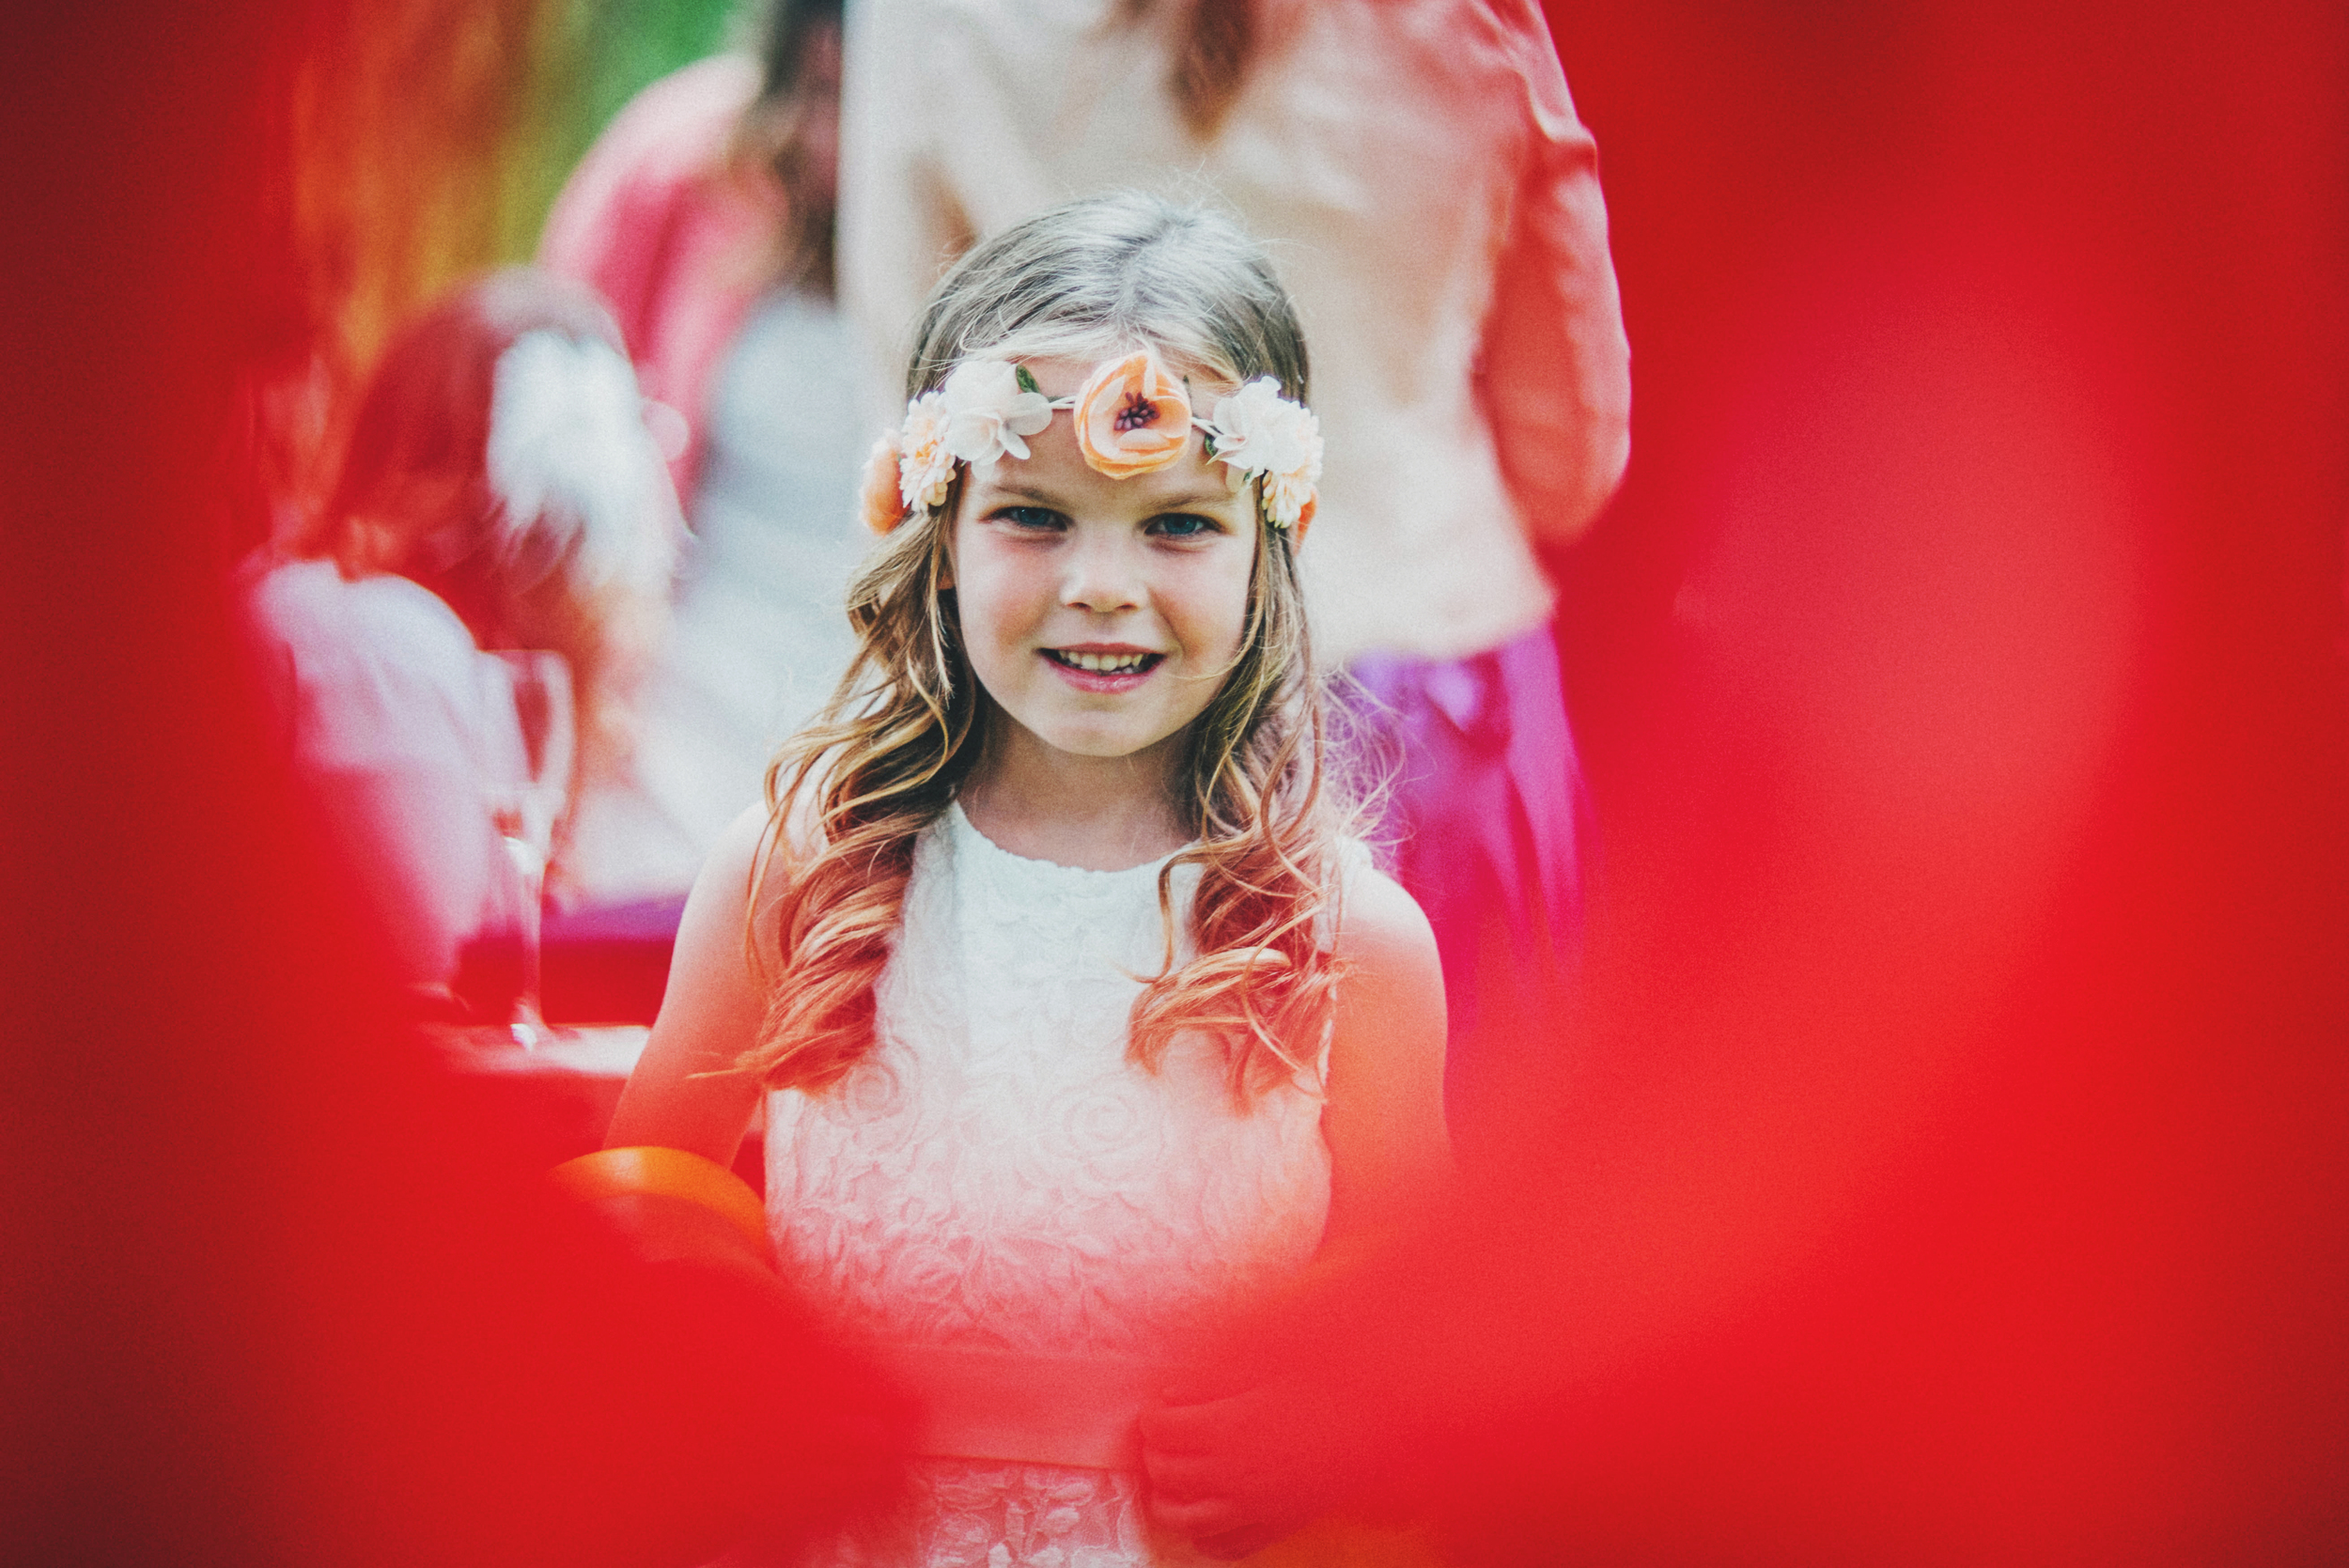 Flower Girl Rustic Pub Essex UK Documentary Wedding Photographer